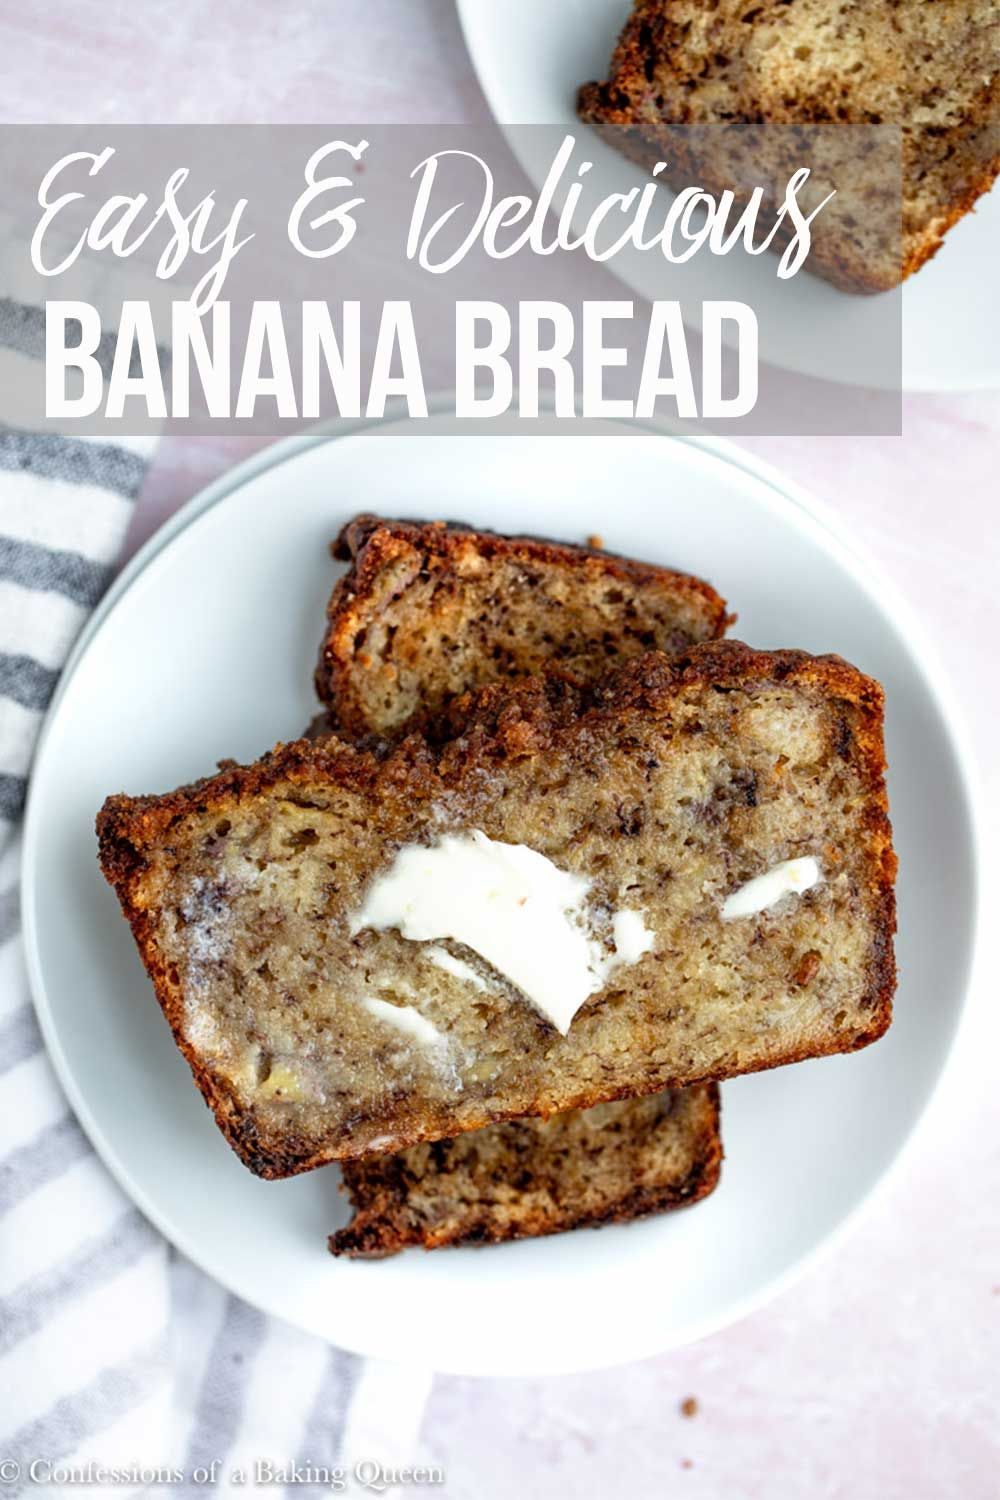 Banana Bread With Sour Cream Confessions Of A Baking Queen Recipe In 2020 Best Banana Bread Banana Bread Banana Bread Recipes